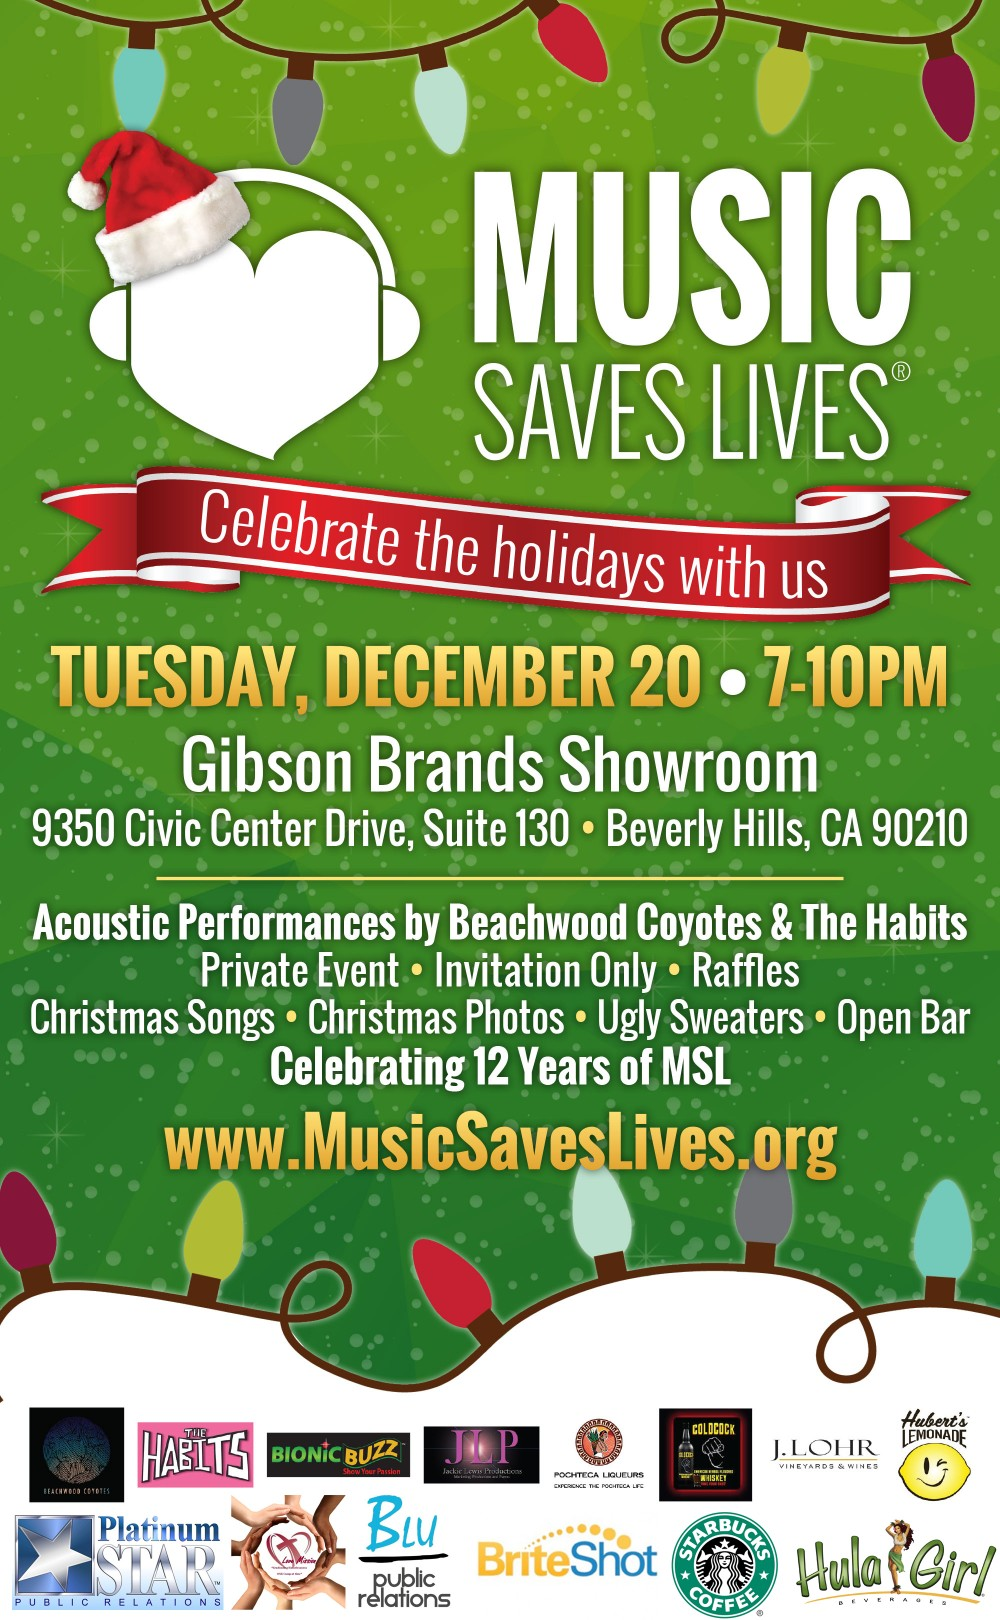 music saves lives christmas party at gibsons brands showroom beverly hills - Christmas Party Songs